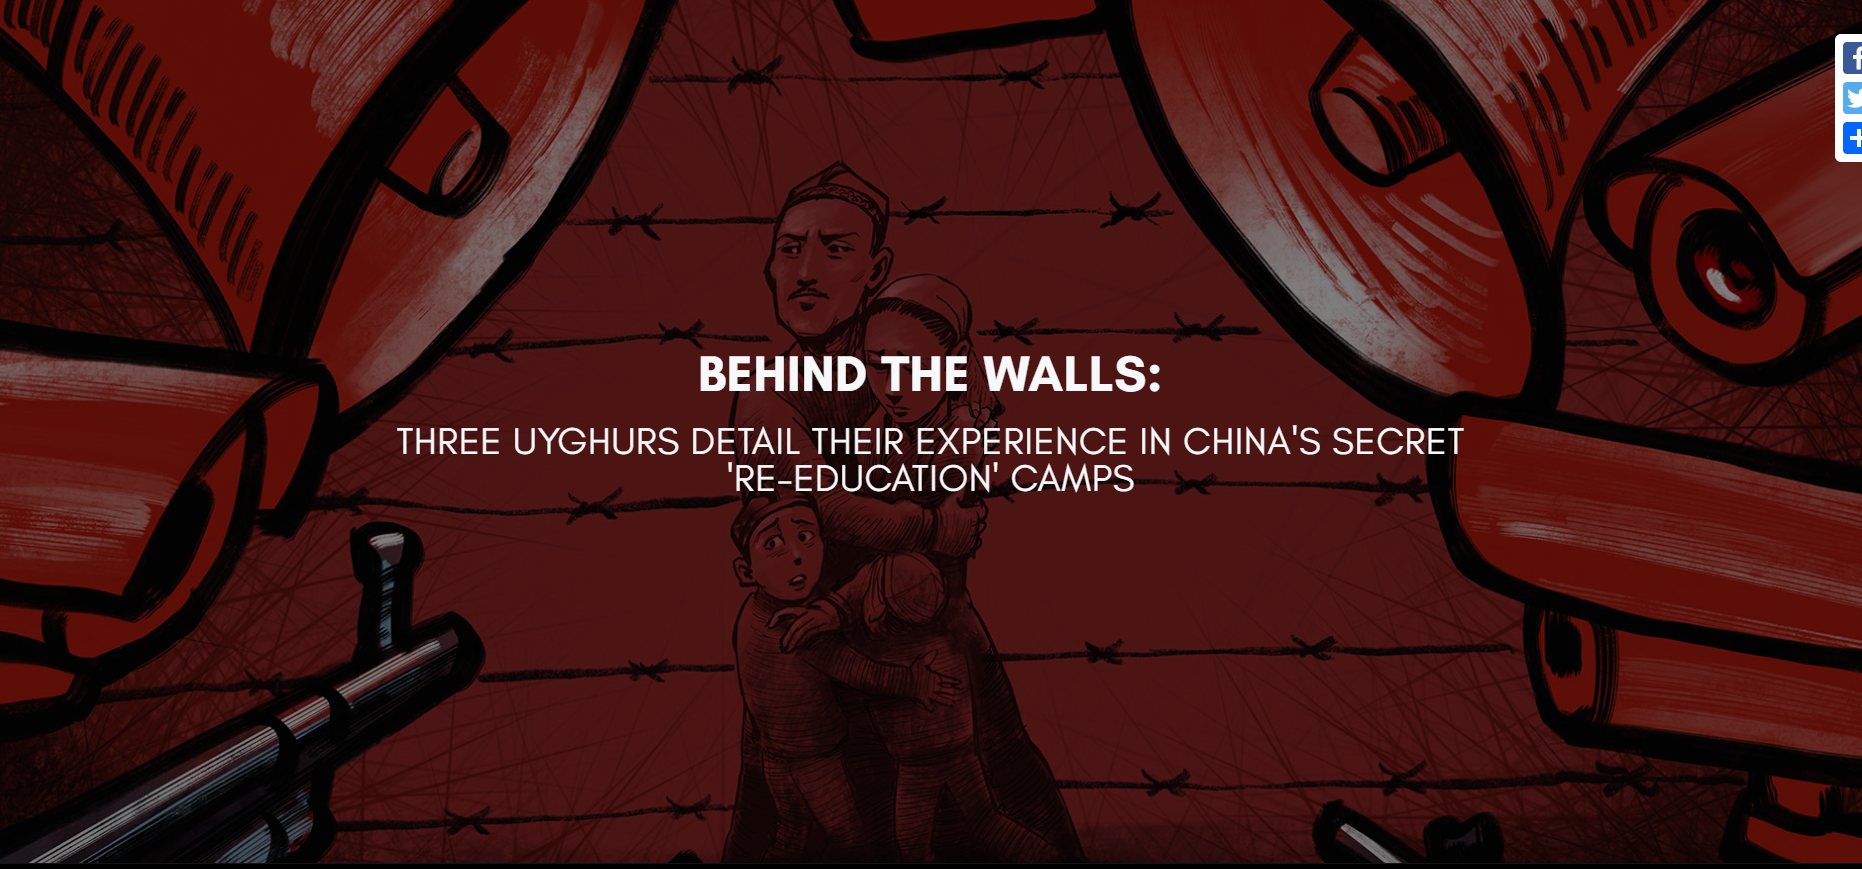 Radio Free Asia launches documentary on former Uyghur detainees